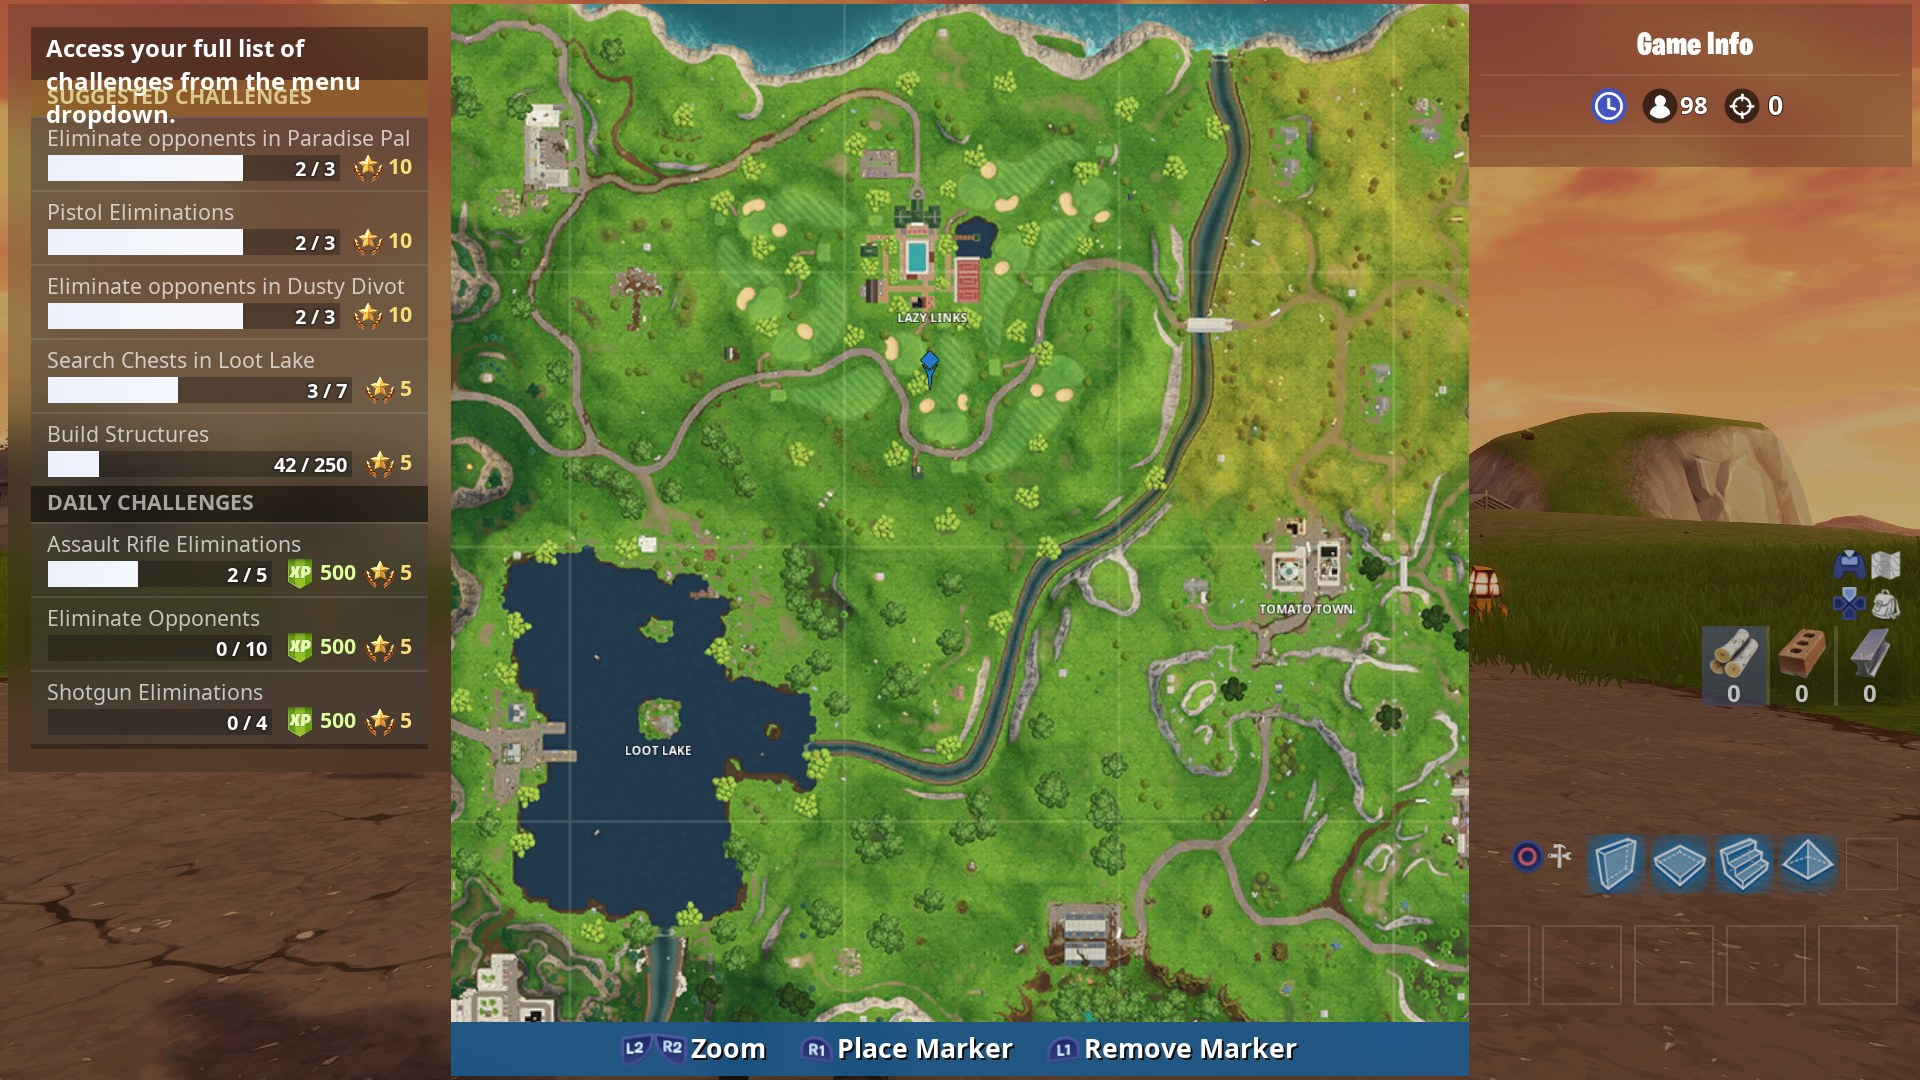 fortnite battle royale map which can be found within square f3 now head just south from the main large building compound at lazy links and you ll be - lazy links fortnite map